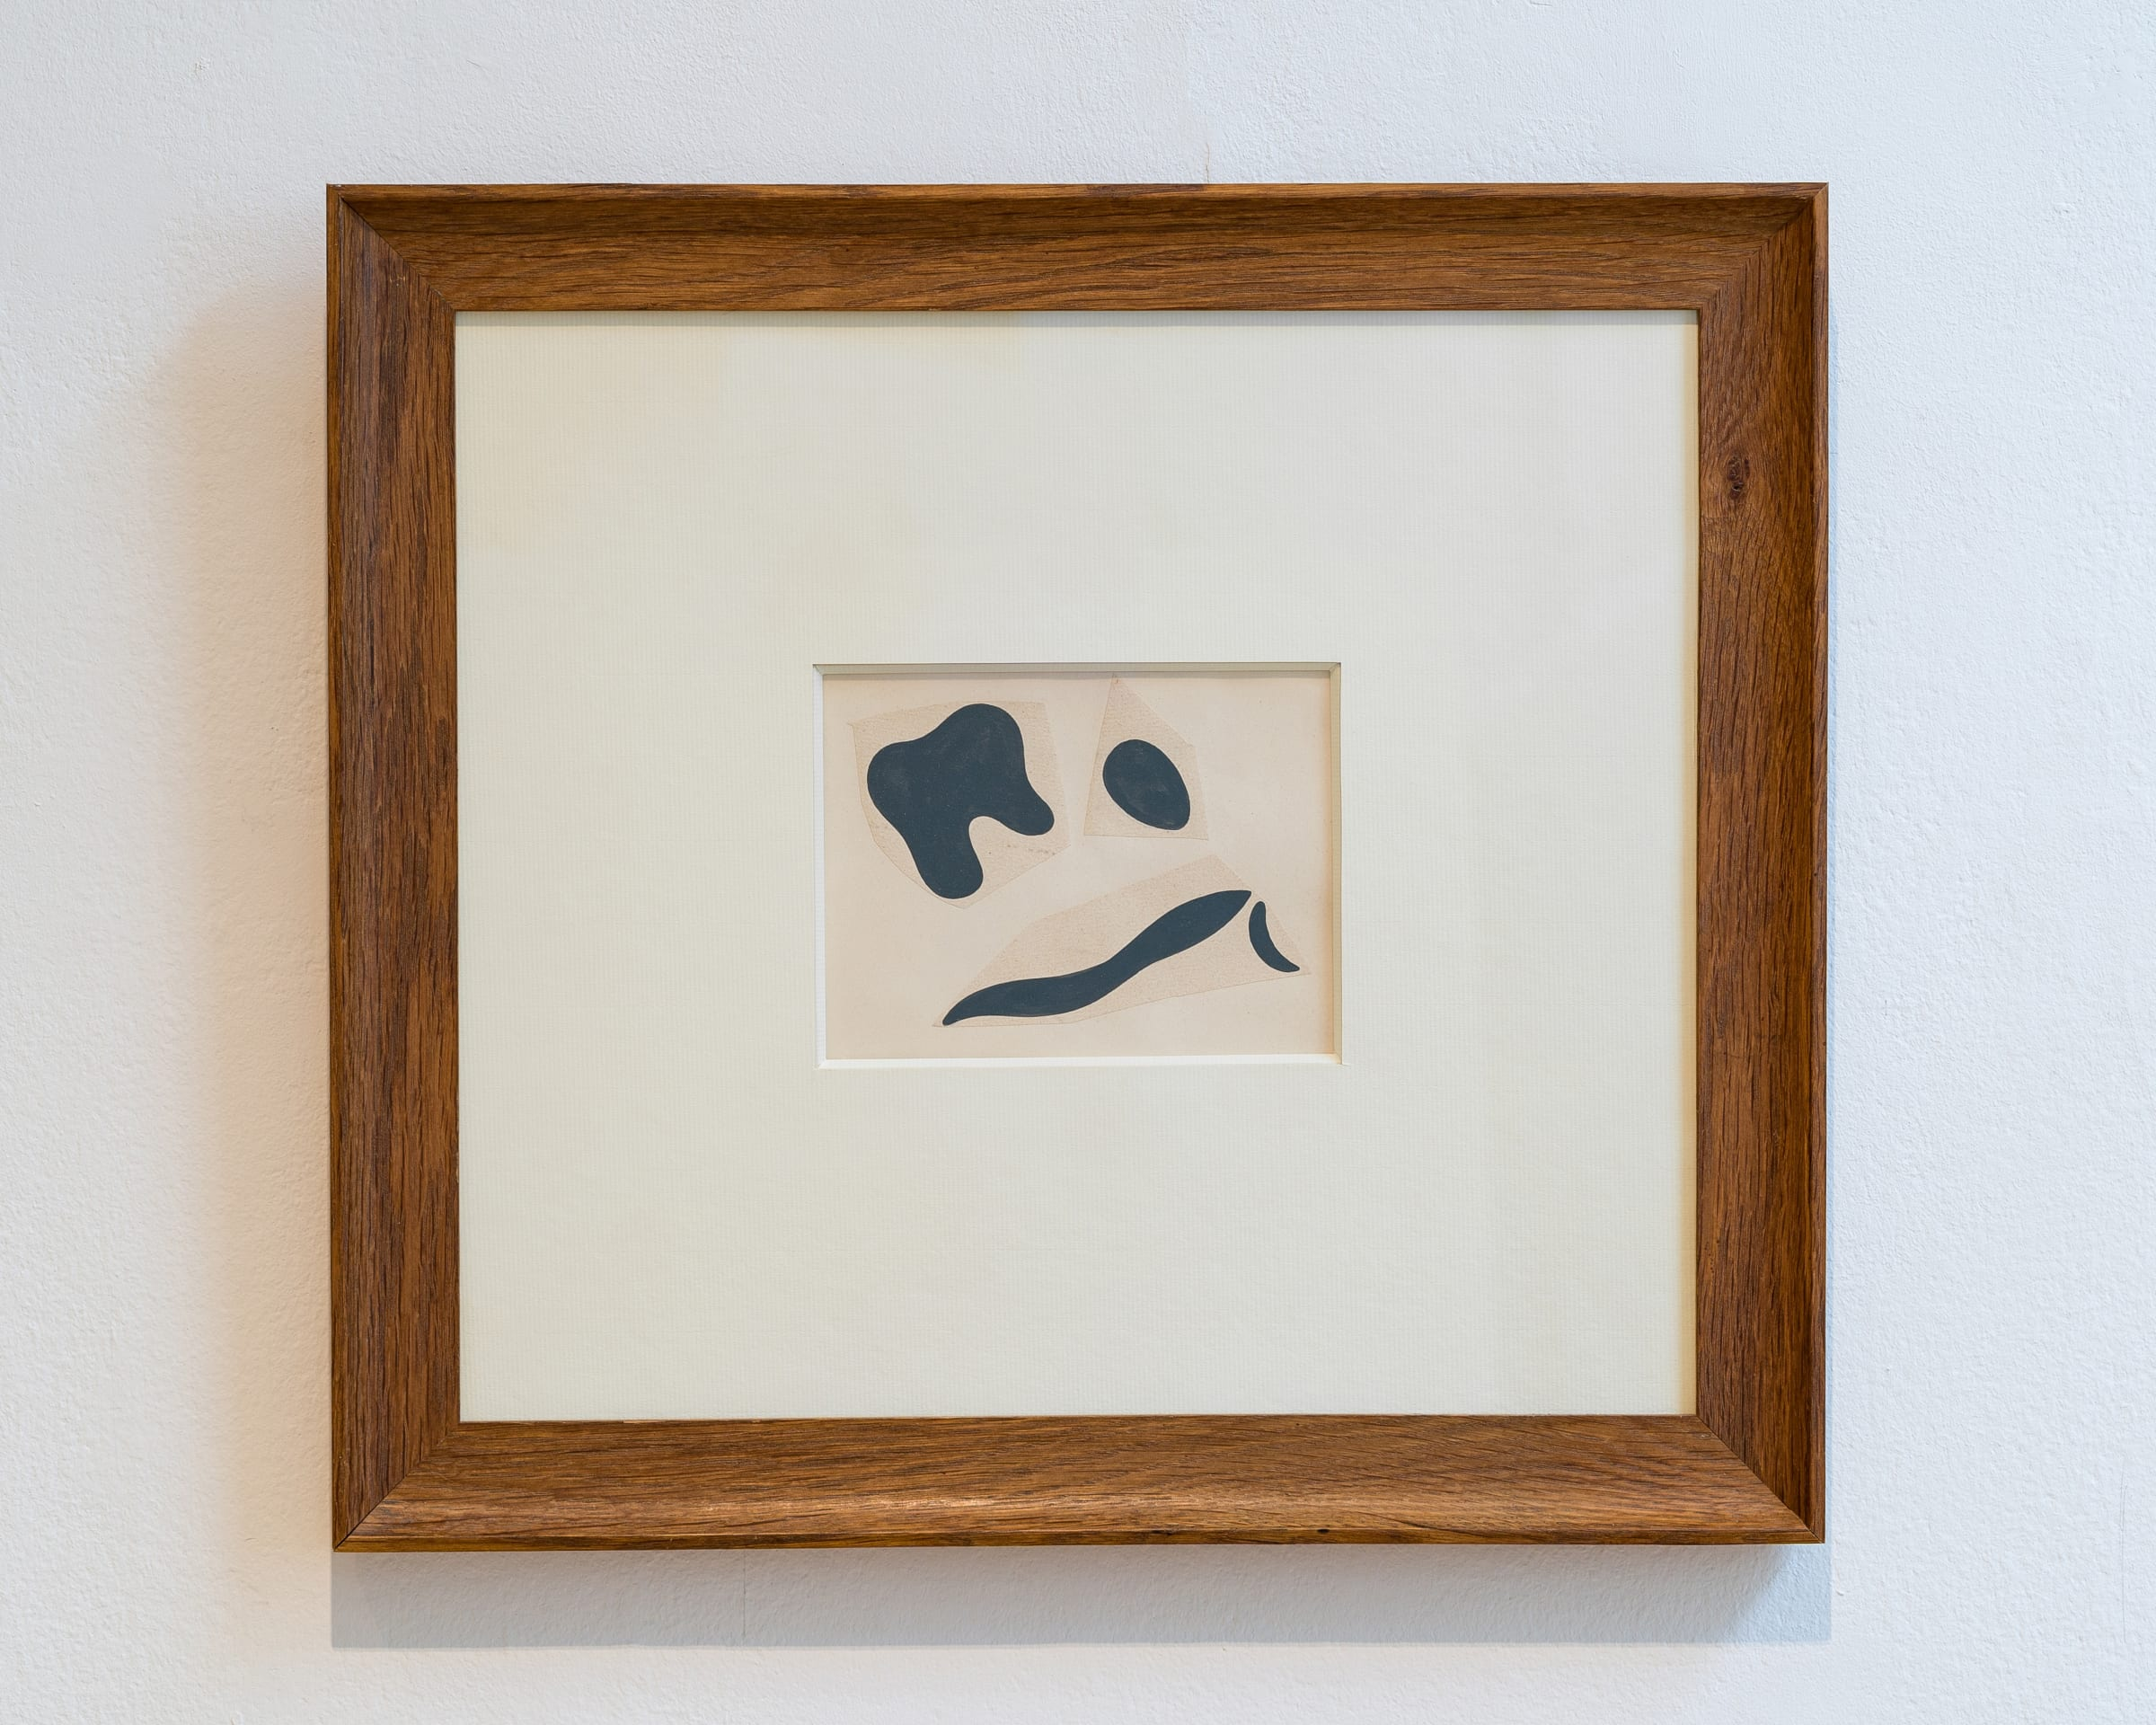 """<span class=""""link fancybox-details-link""""><a href=""""/exhibitions/582/works/artworks_standalone11191/"""">View Detail Page</a></span><div class=""""signed_and_dated"""">Signed and stamped on reverse Succ Jean Arp (Succession Jean Arp)</div><div class=""""medium"""">Collage on paper</div><div class=""""dimensions"""">4 3/4 x 6 1/2 inches (12 x 16.5 cm)<br /> Frame: 18 3/4 x 16 3/4 inches (47.5 x 42.5 cm)</div>"""